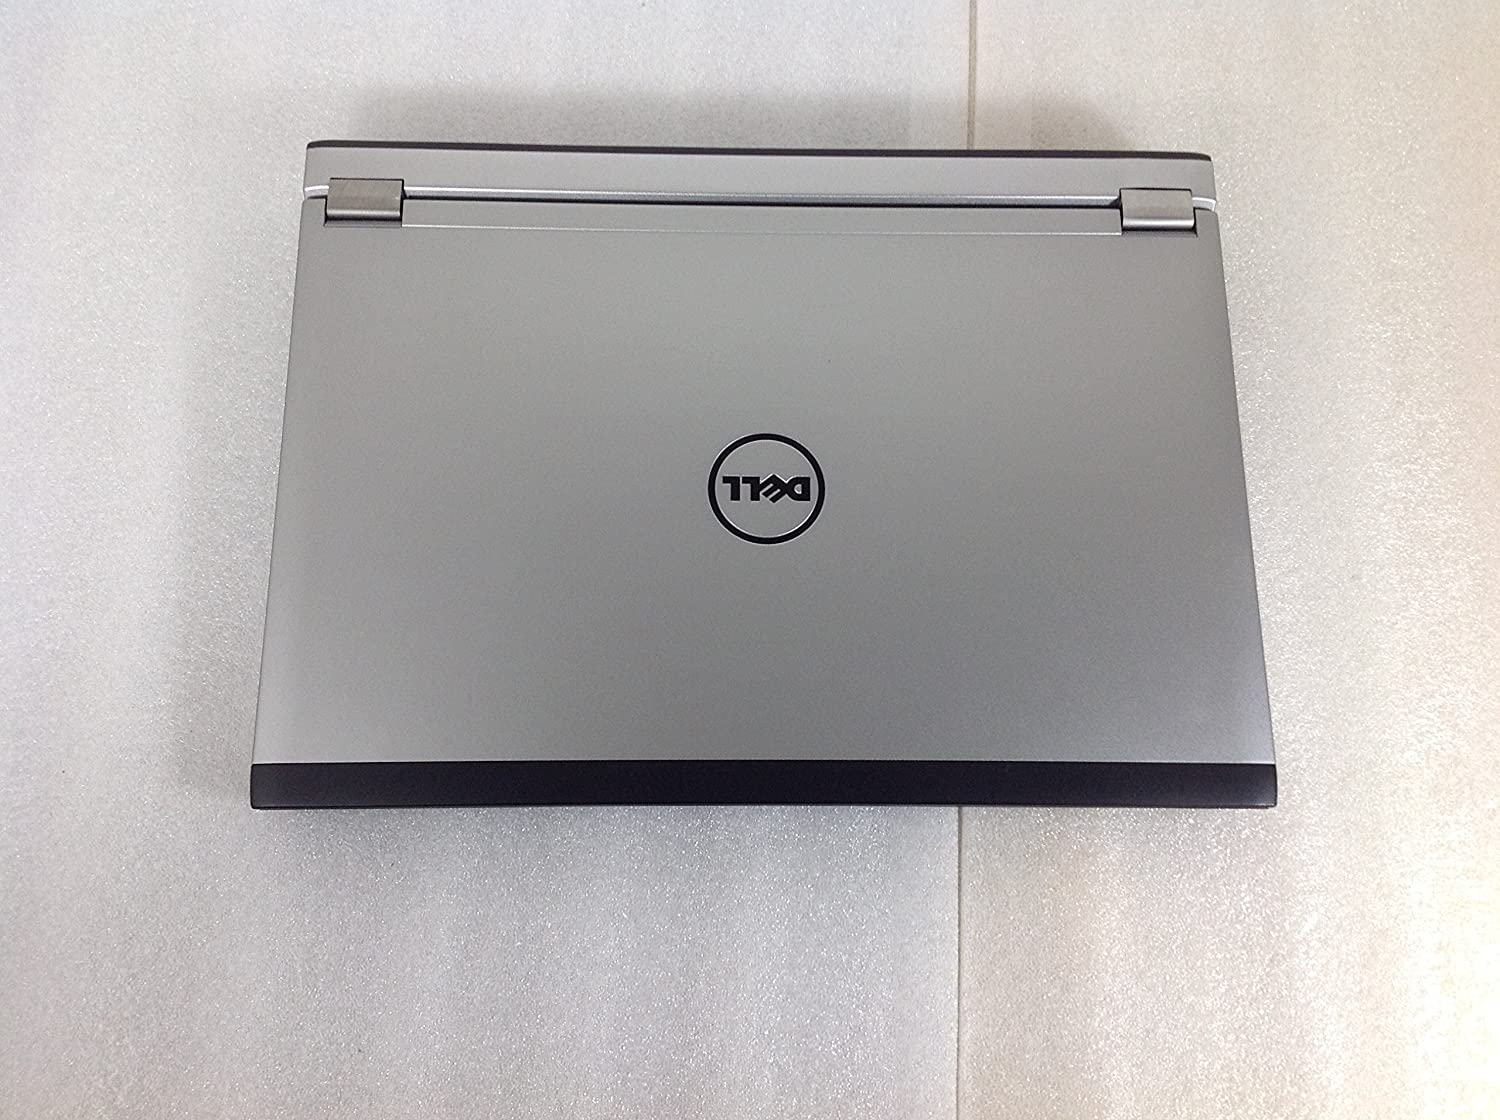 Dell Latitude 3330 13.3' Notebook - Intel Celeron 1017U 1.60 GHz